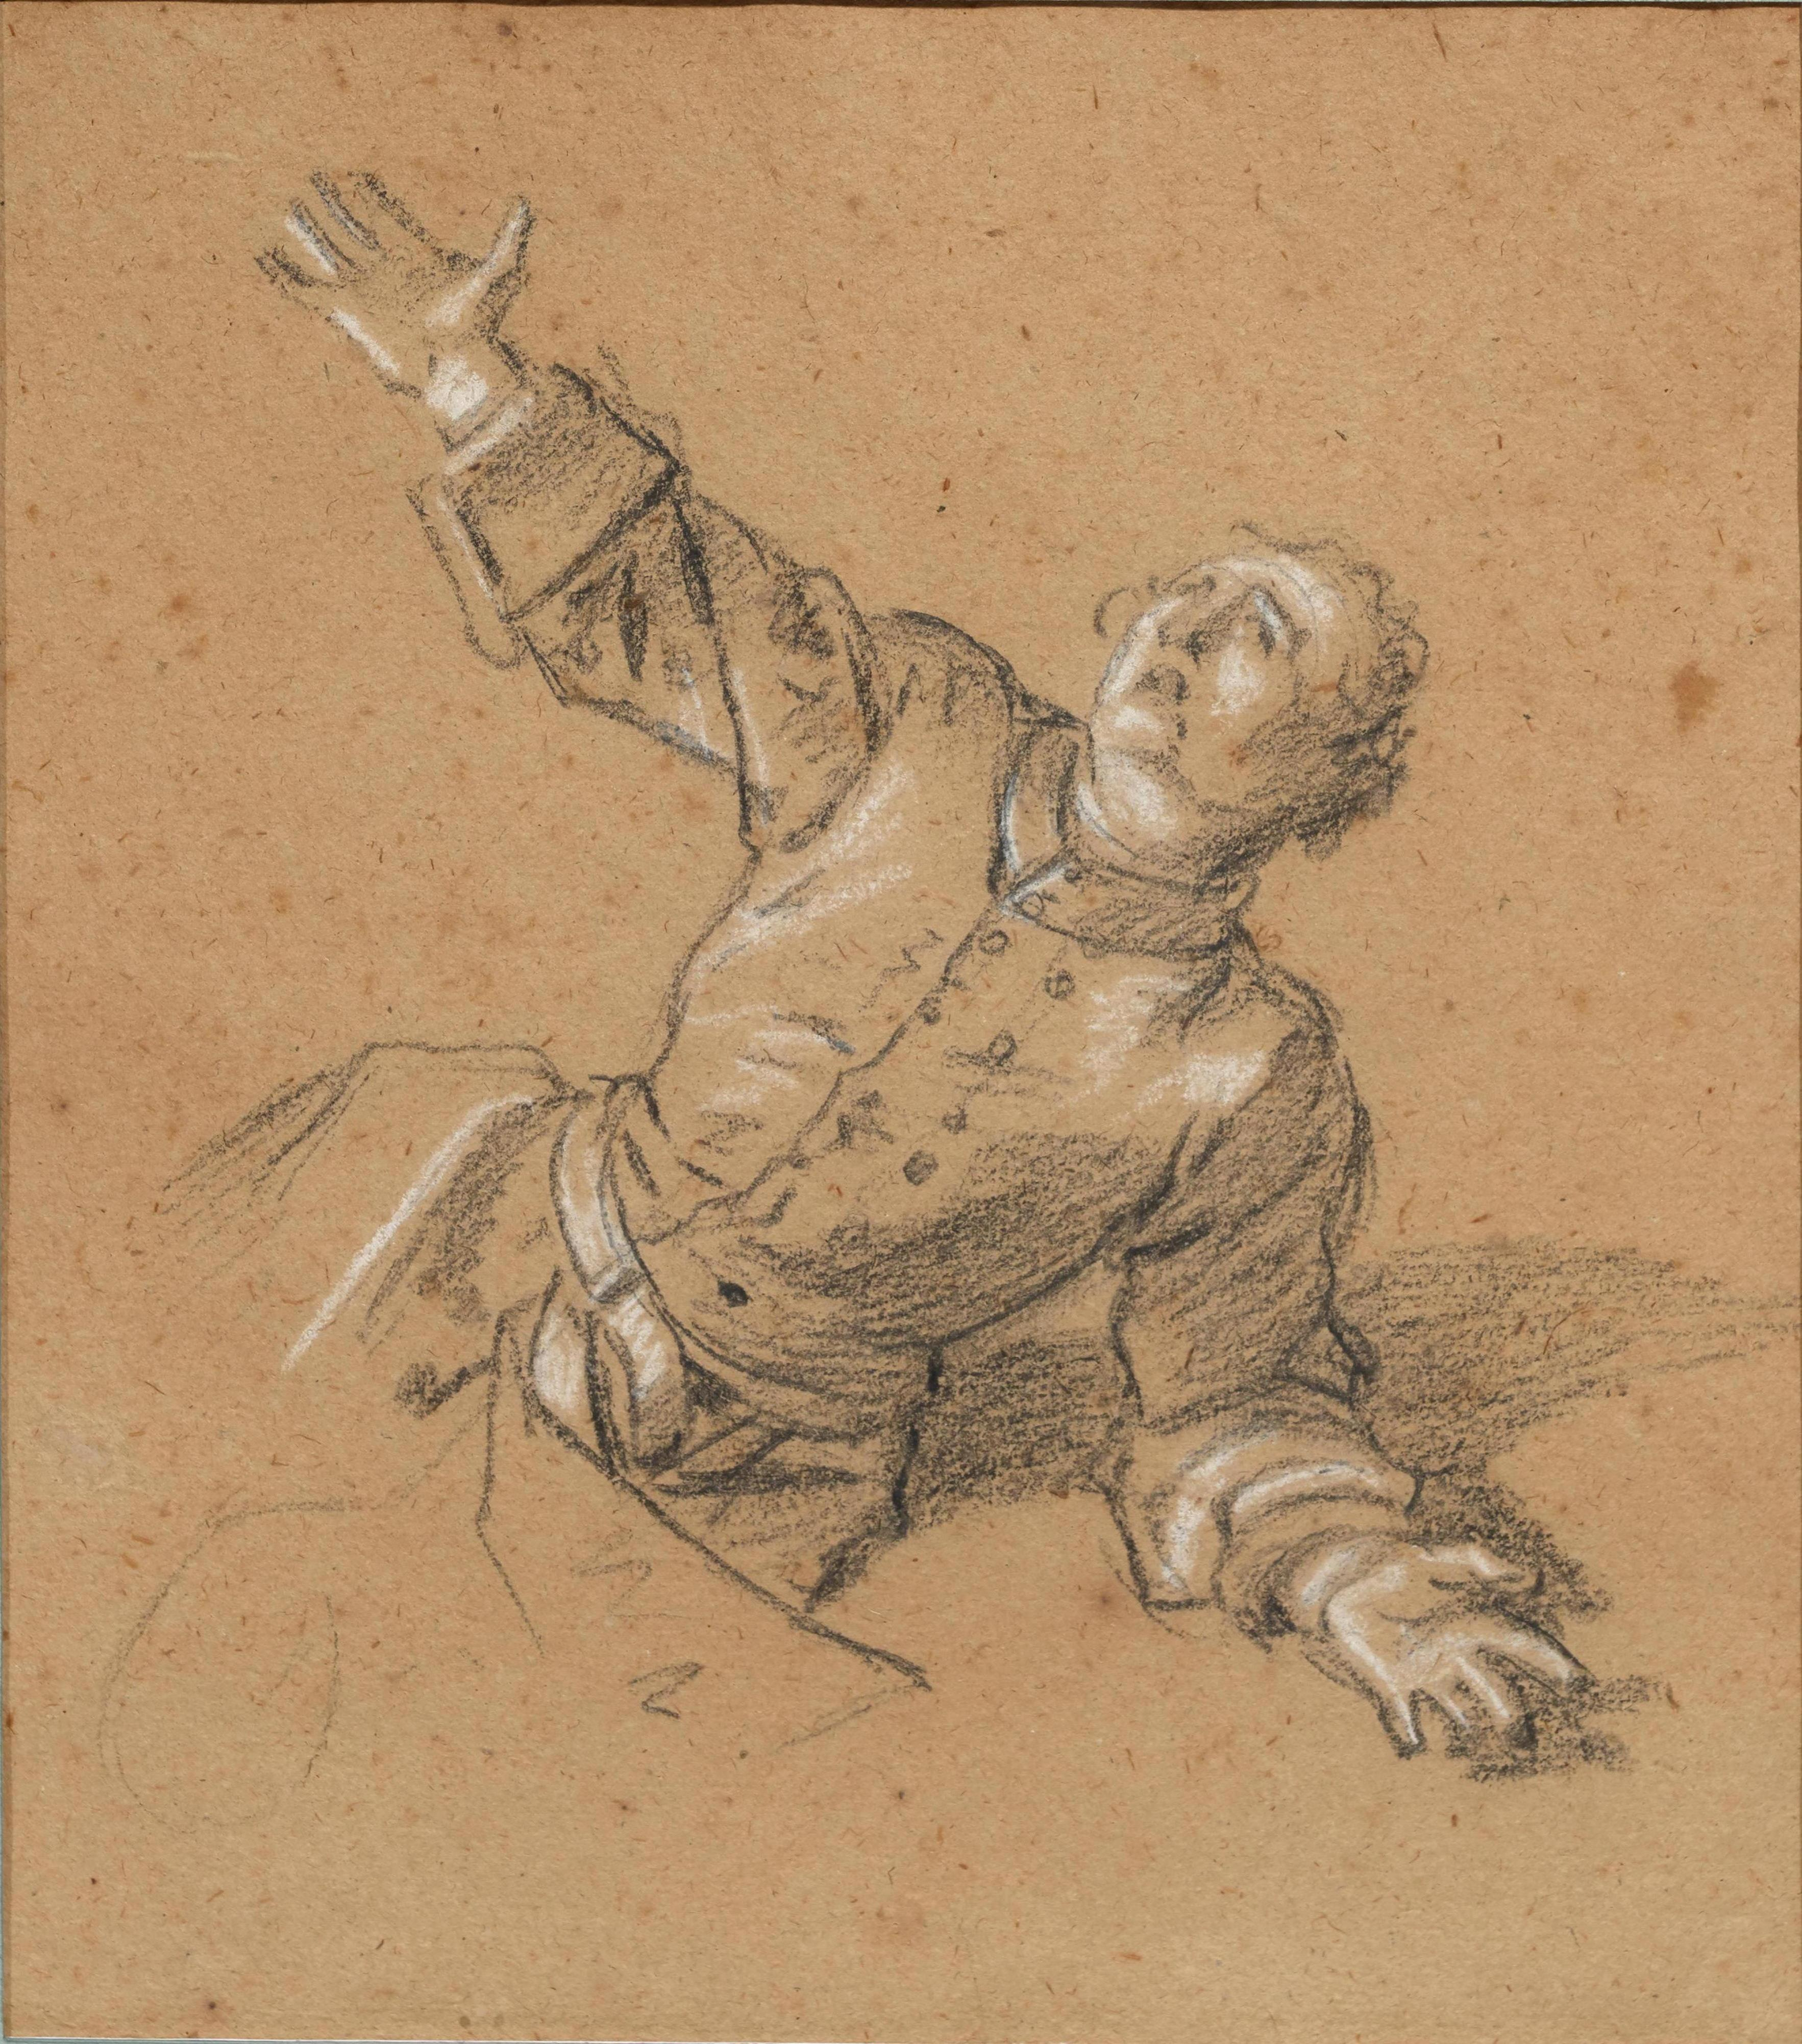 Early 18th Century Drawings and Watercolor Paintings